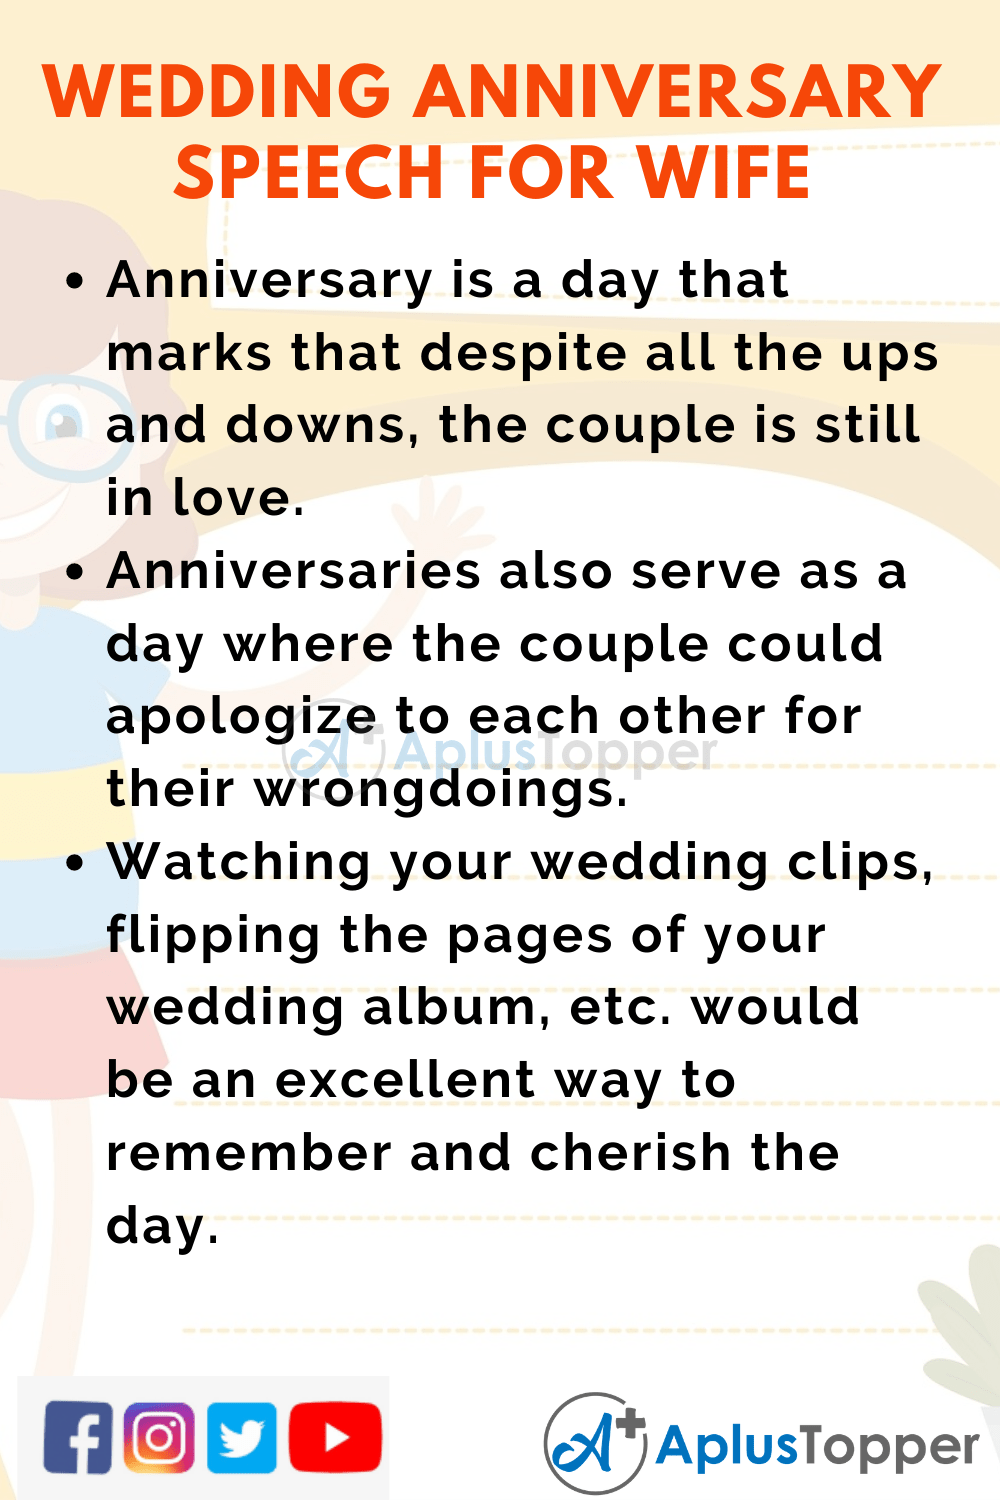 Short Speech On Wedding Anniversary for Wife 150 Words In English